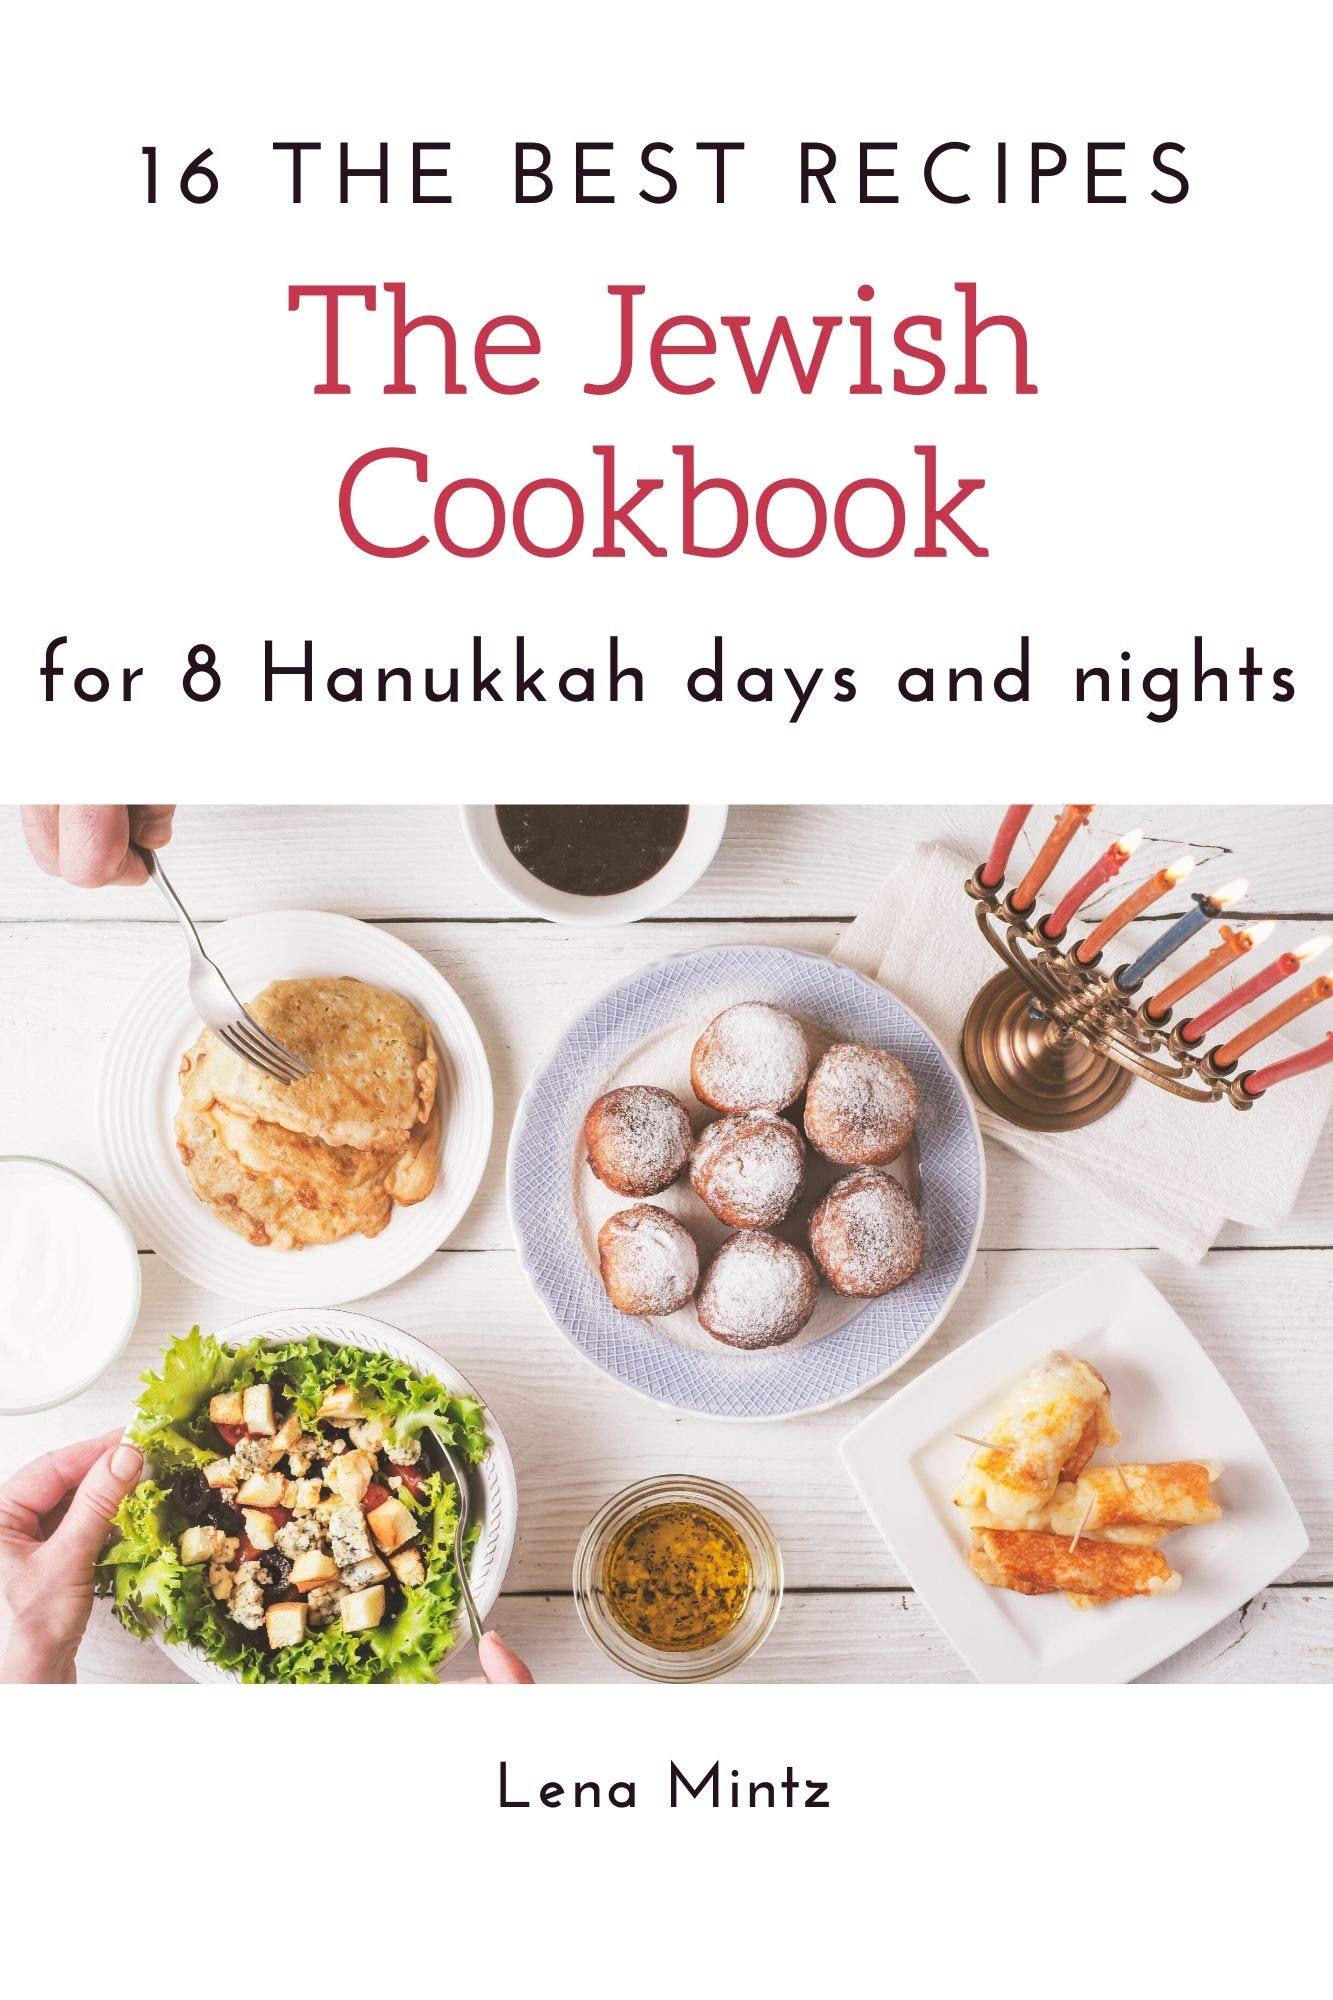 The Jewish Cookbook. 16 The Best Recipes For 8 Hanukkah Days And Nights  Holiday Cooking Book Book 2   English Edition